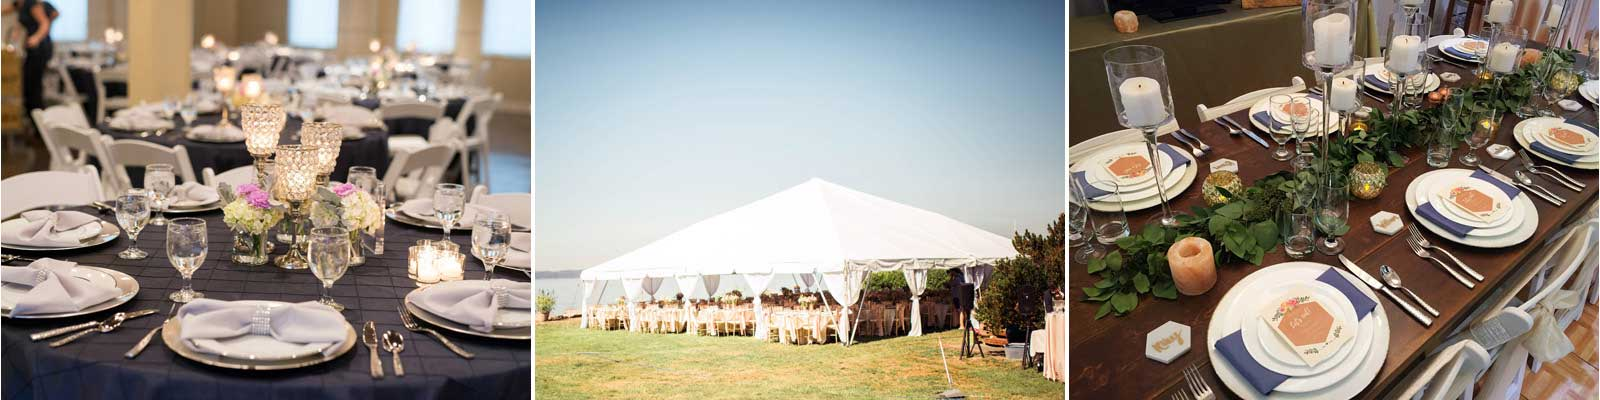 Wedding rentals in the Greater South Sound Region & American Party Place | Wedding Party and Event Rentals in Tacoma